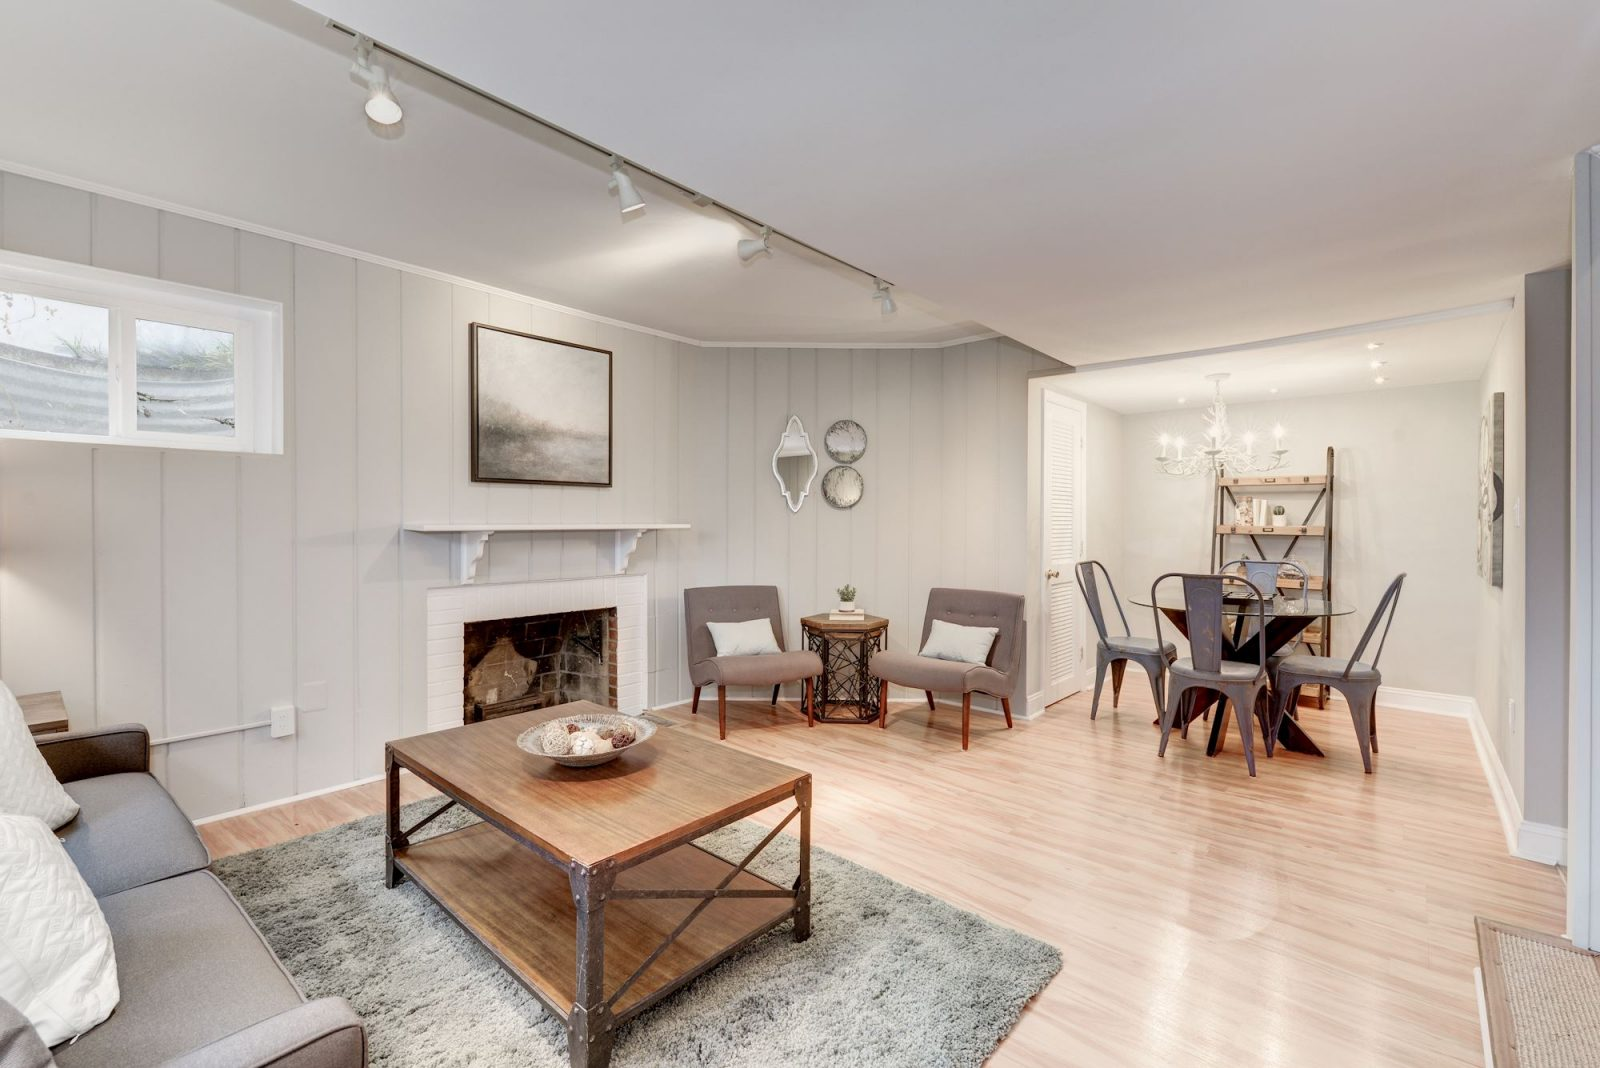 From Top To Bottom: How Basement Staging Can Boost Your Home Value